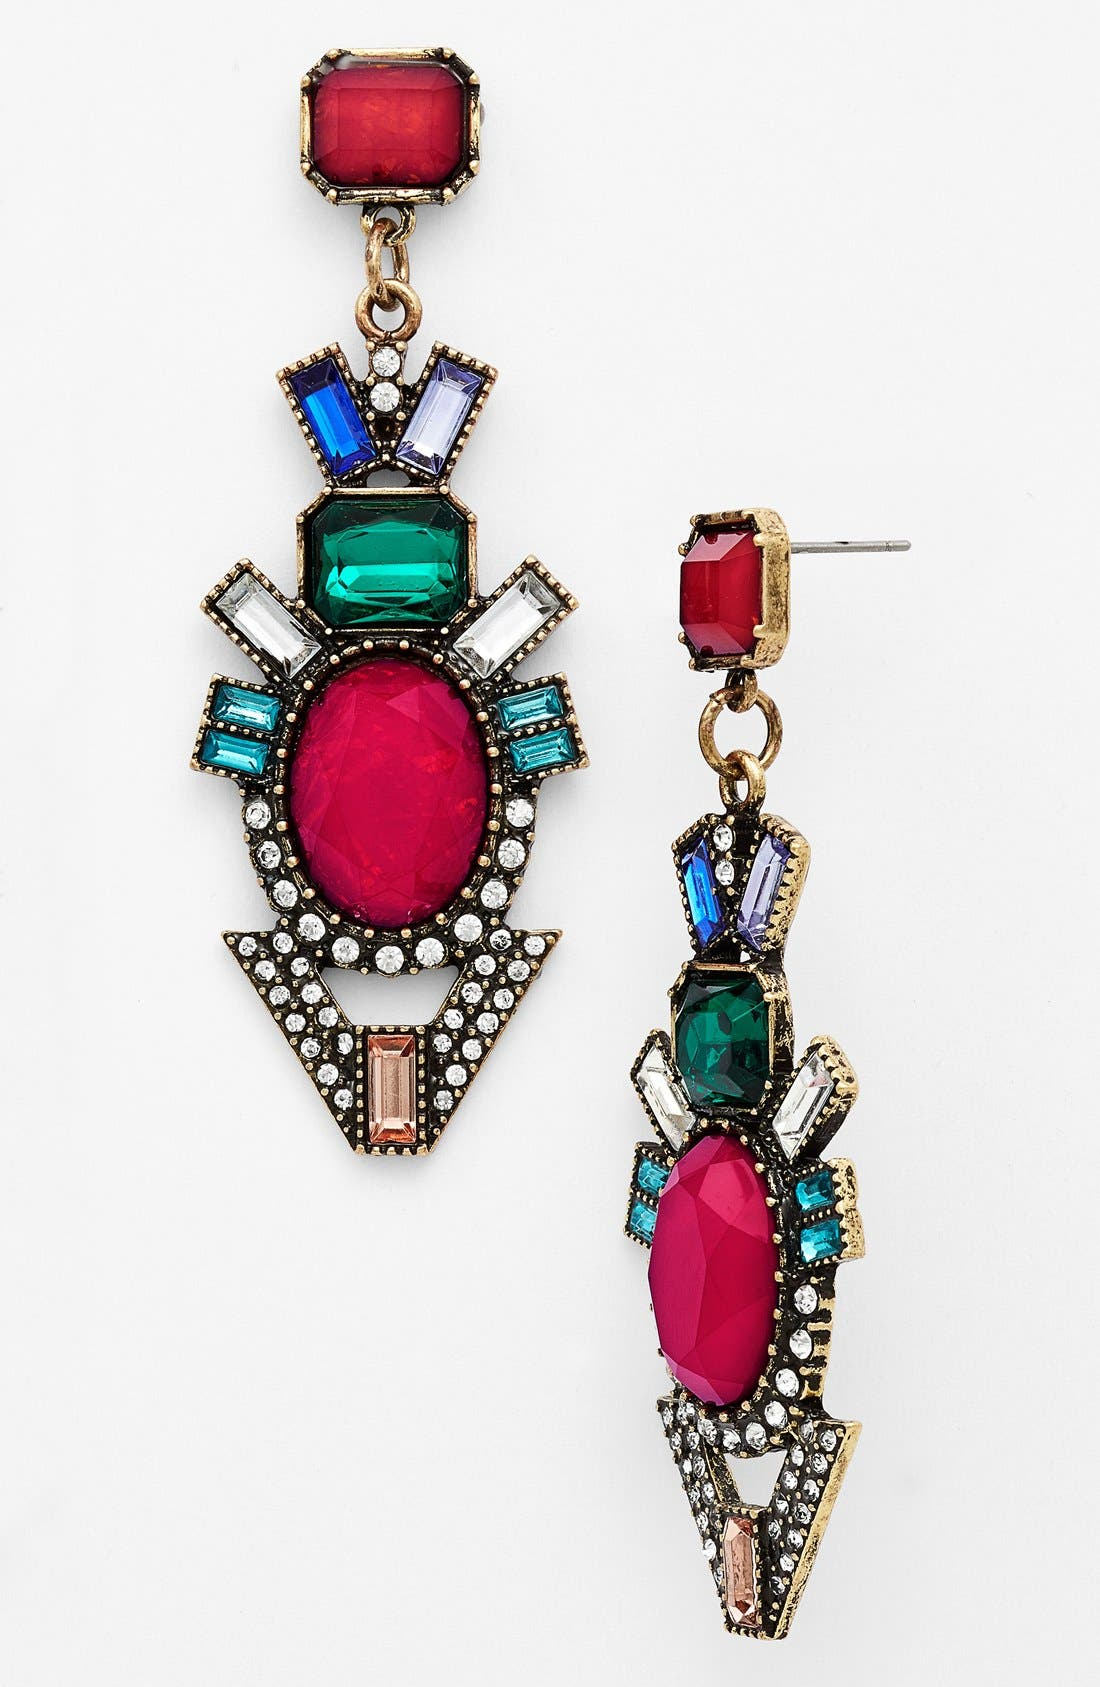 Alternate Image 1 Selected - BaubleBar 'Deco Drama' Mixed Stone Drop Earrings (Nordstrom Exclusive)